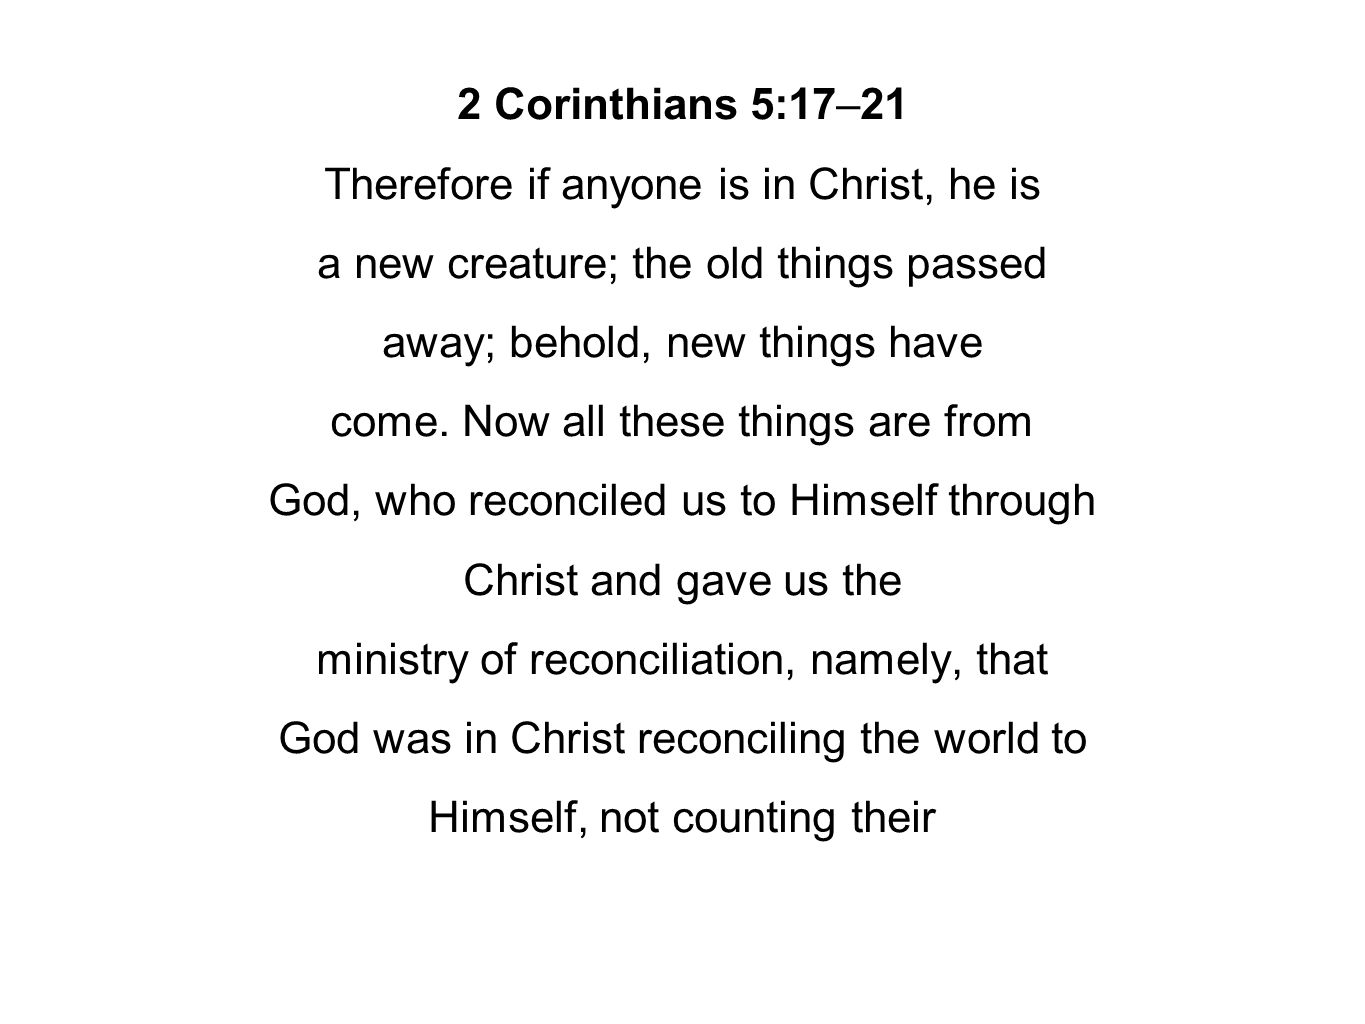 2 Corinthians 5:17–21 Therefore if anyone is in Christ, he is a new creature; the old things passed away; behold, new things have come. Now all these